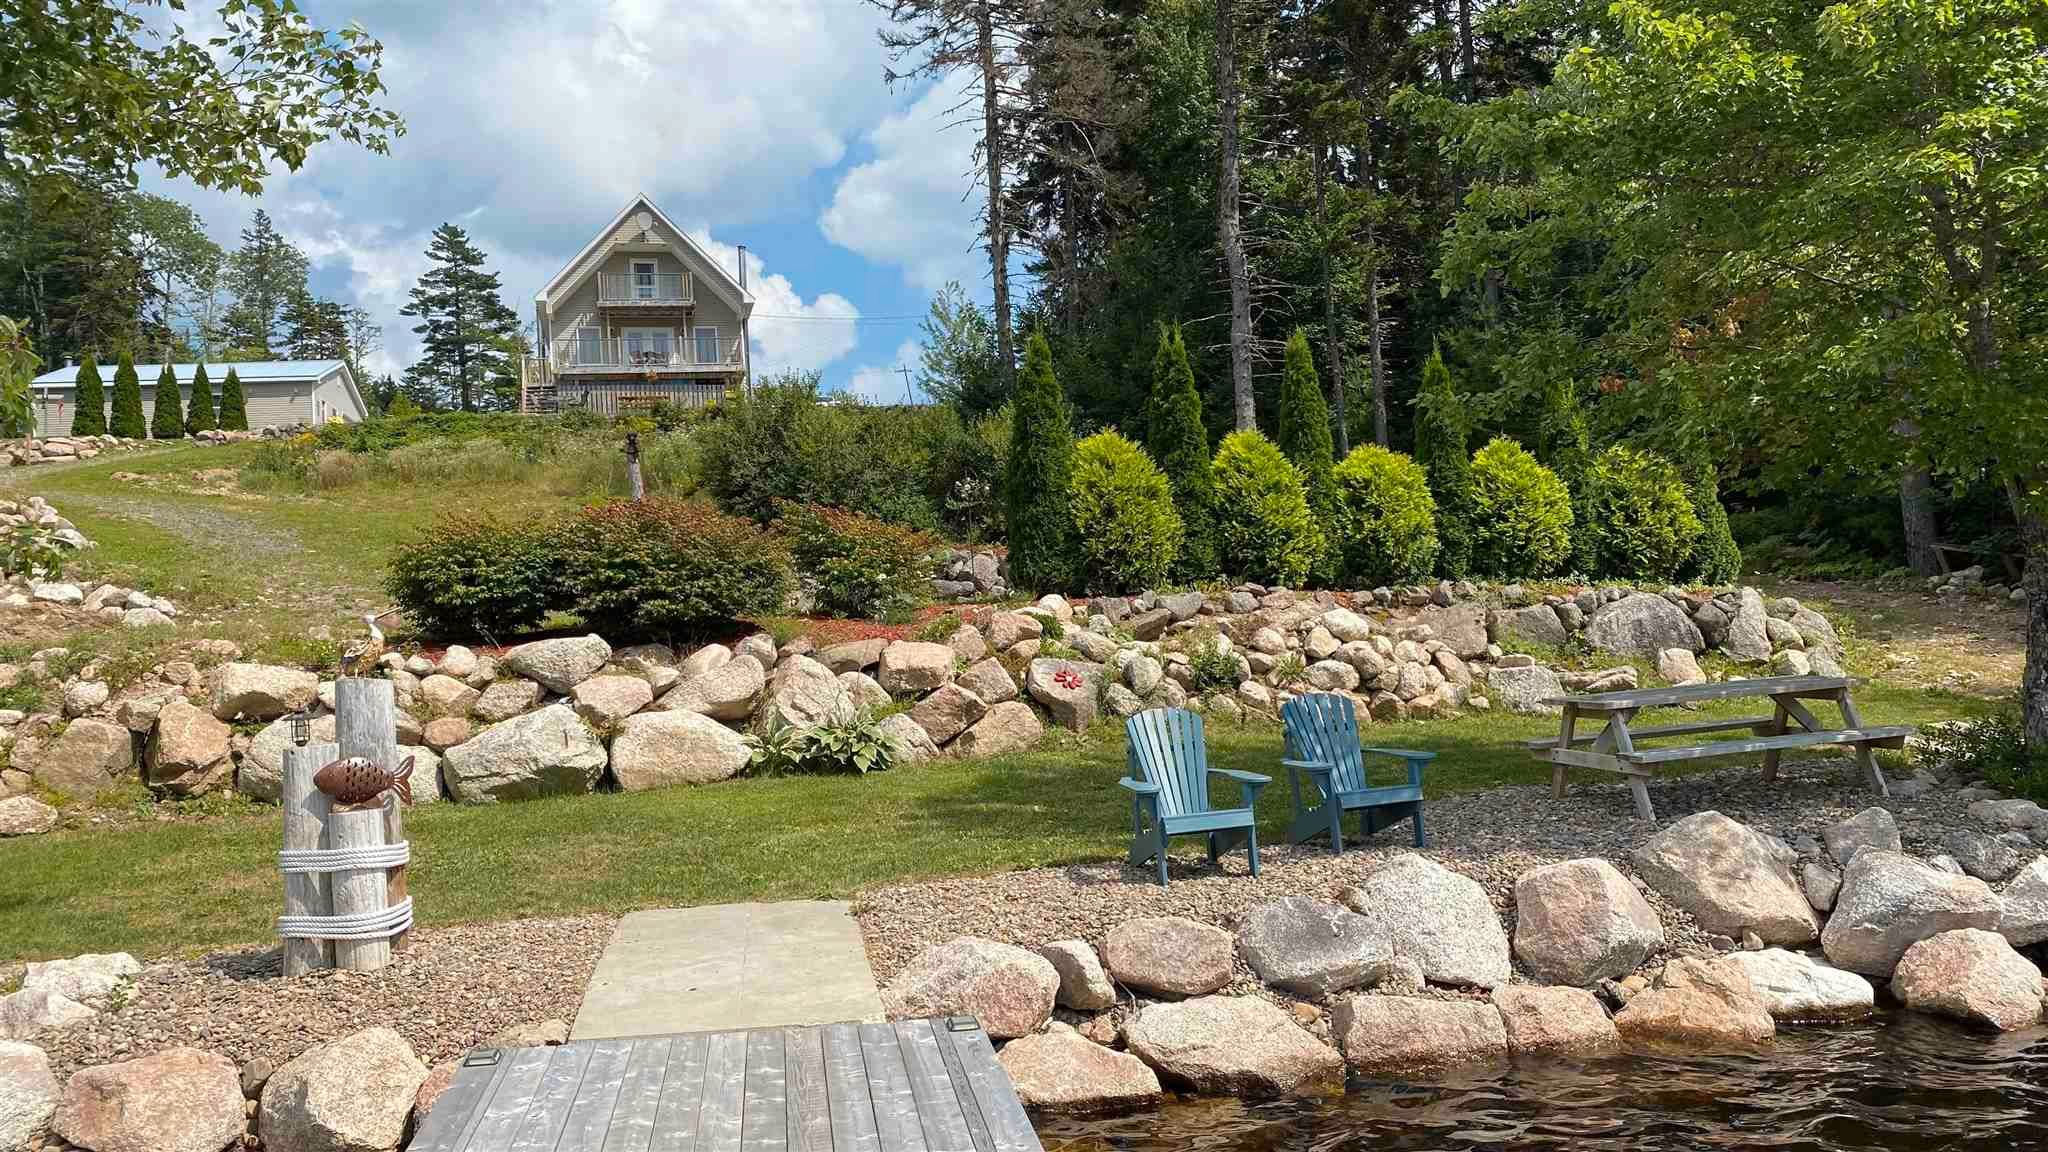 Main Photo: 415 Loon Lake Drive in Lake Paul: 404-Kings County Residential for sale (Annapolis Valley)  : MLS®# 202114160